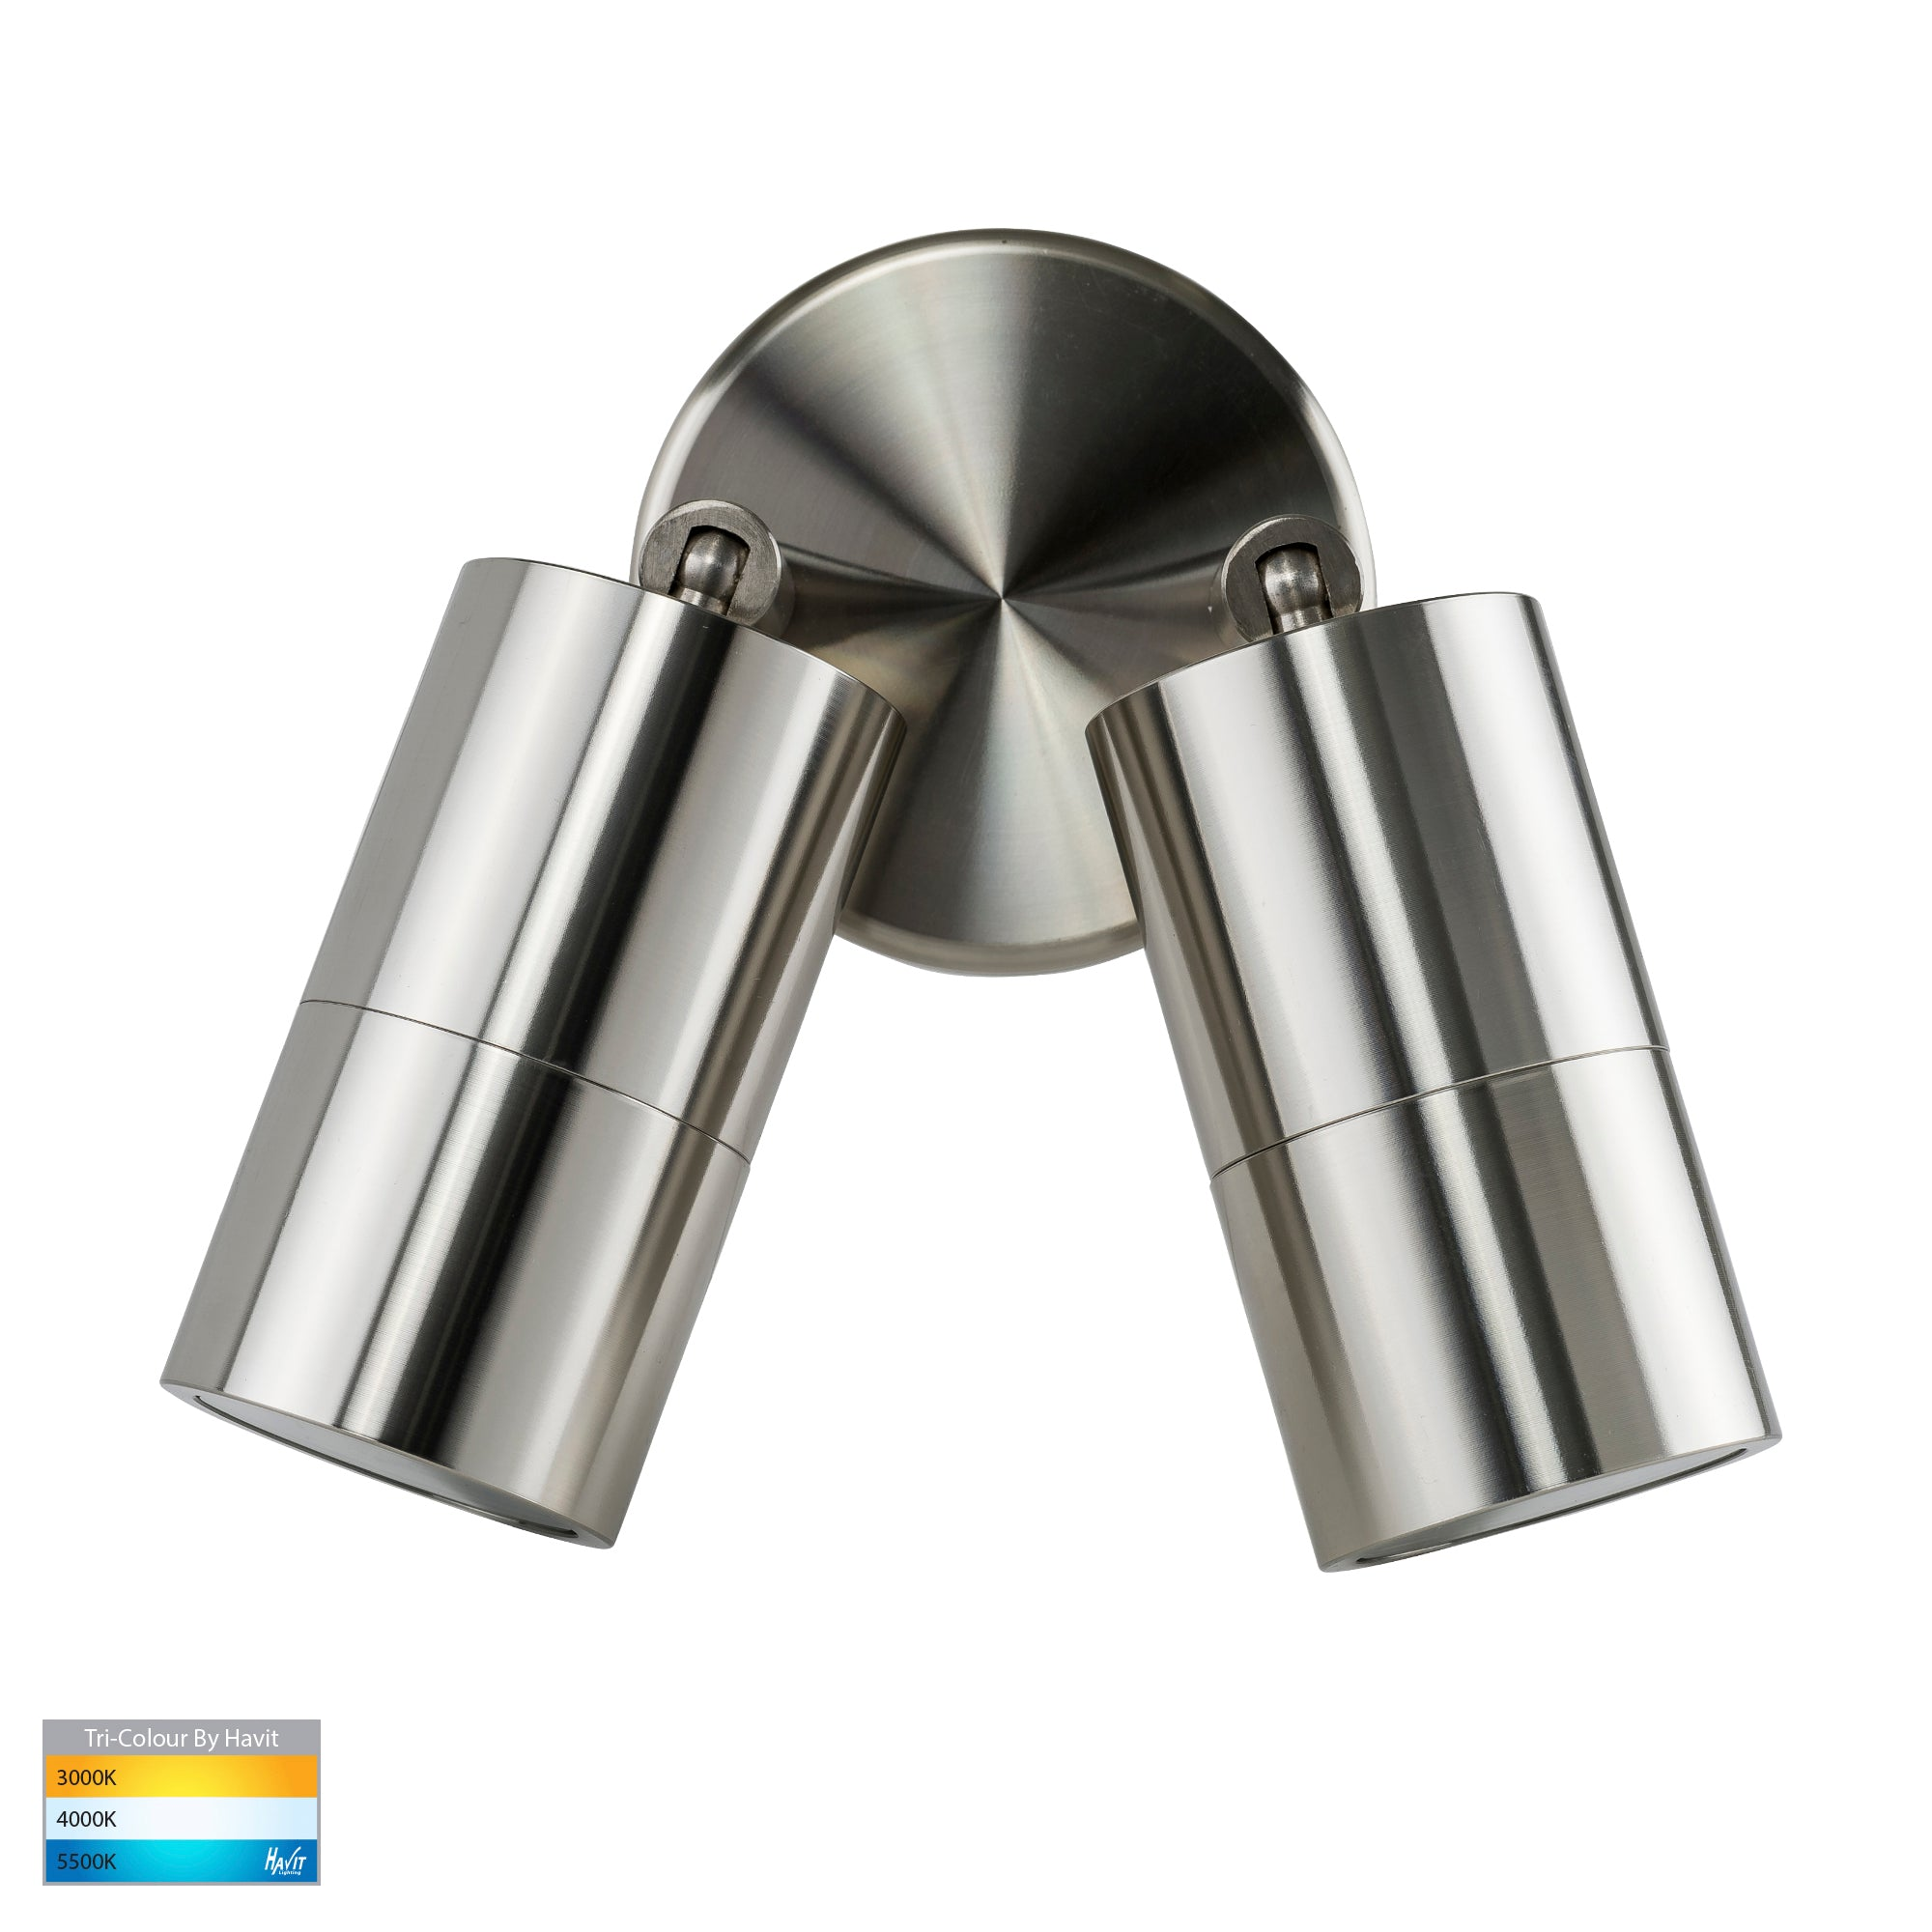 HV1305T-HV1307T - Tivah 316 Stainless Steel TRI Colour Double Adjustable Wall Pillar Lights